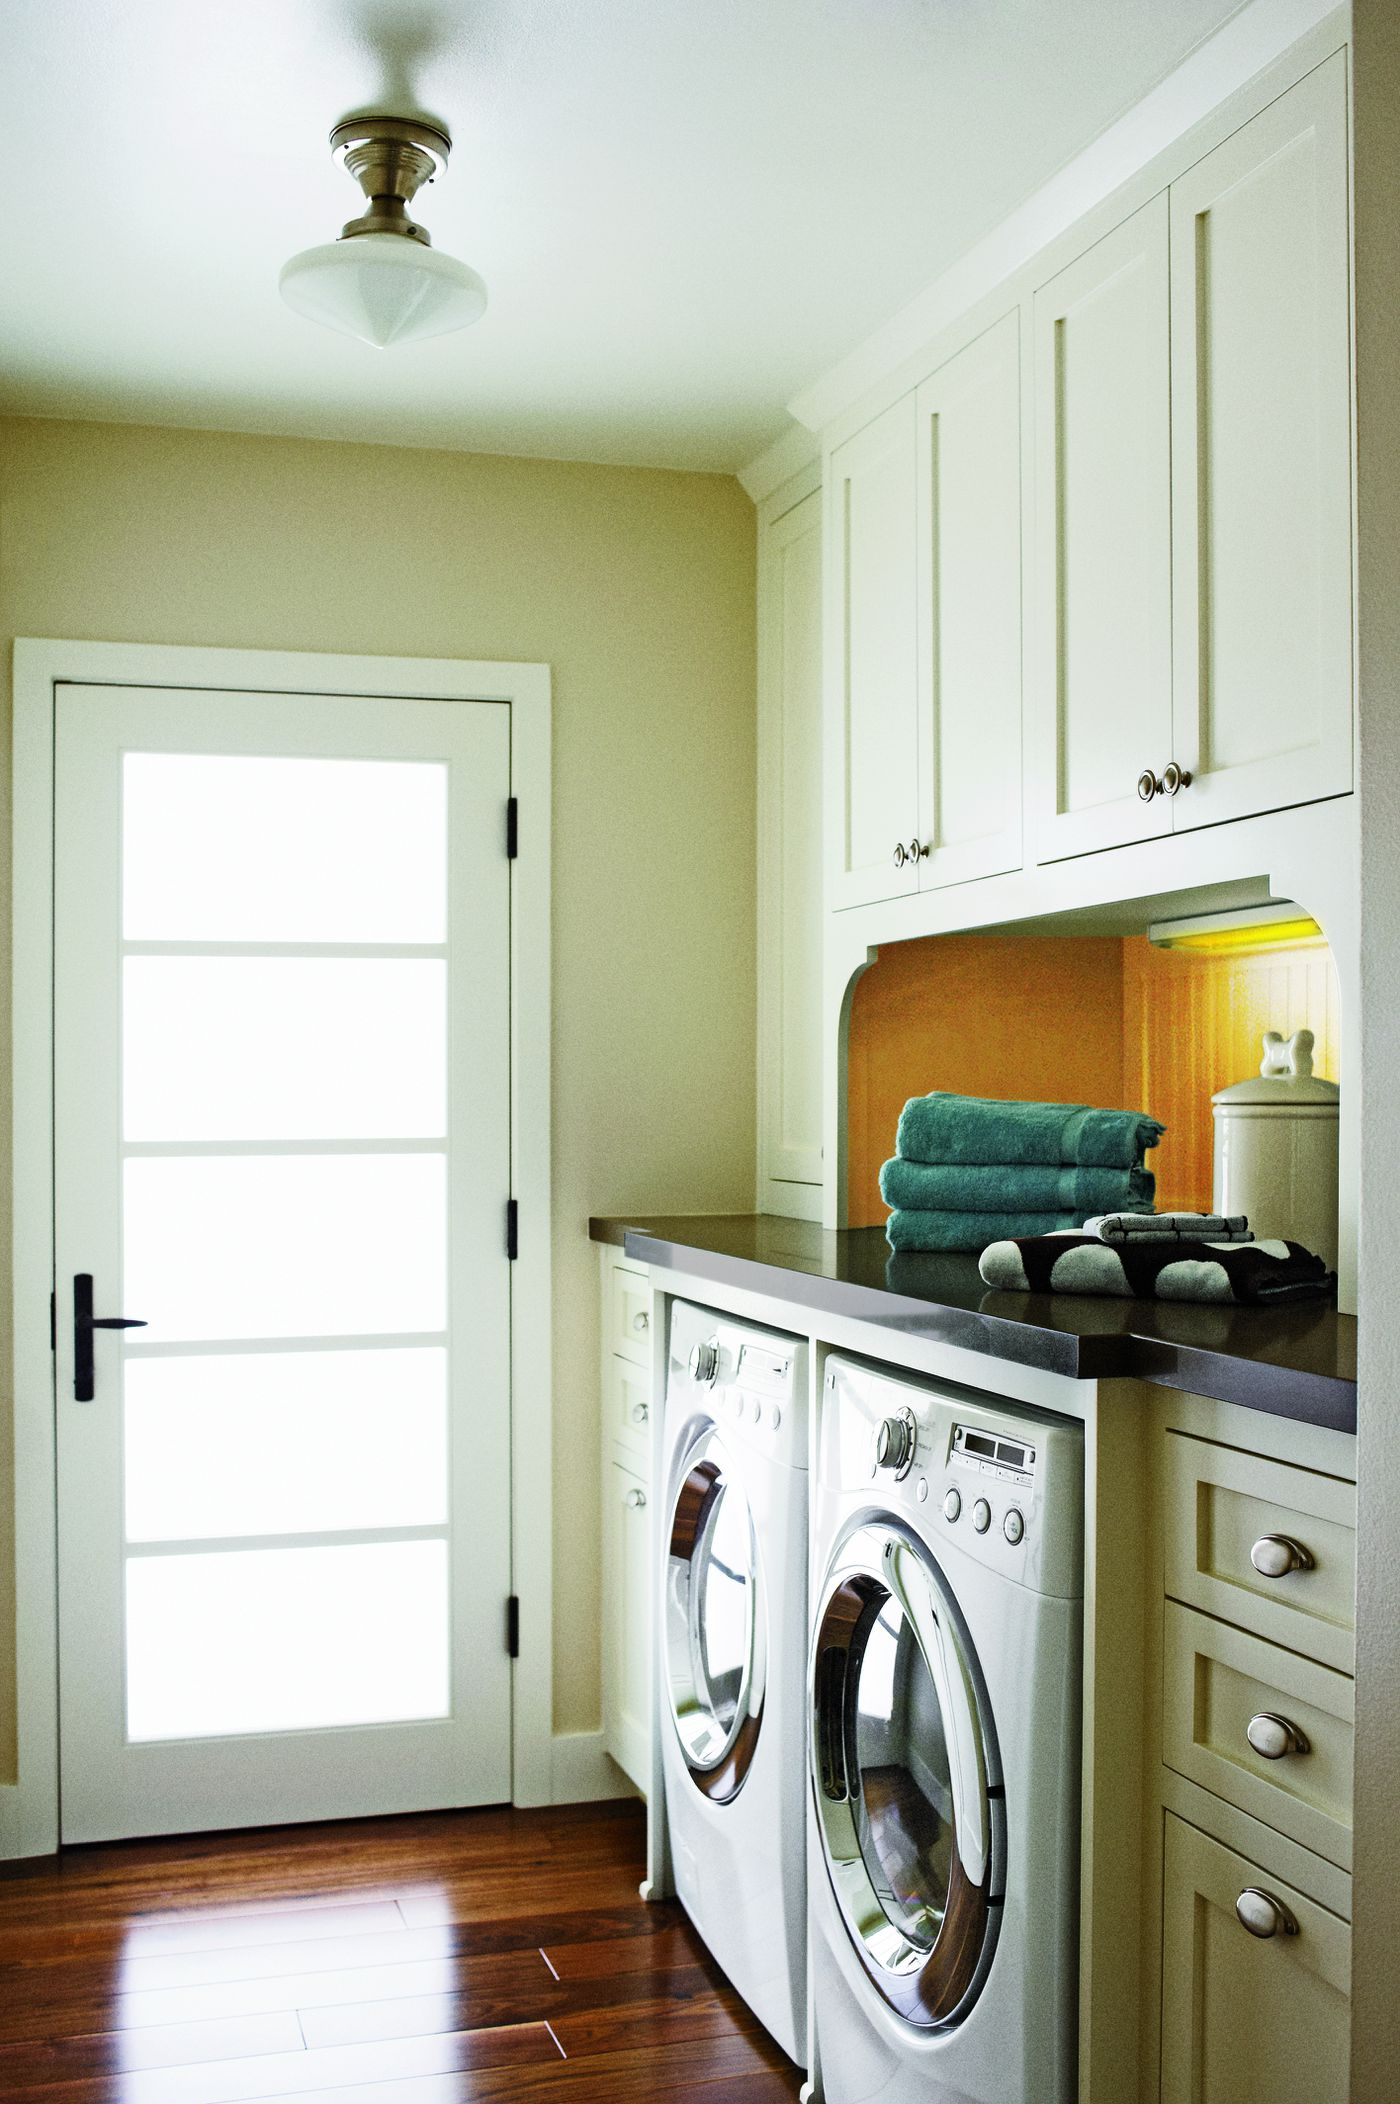 26 Ideas for a Fully Loaded Laundry Room - This Old House